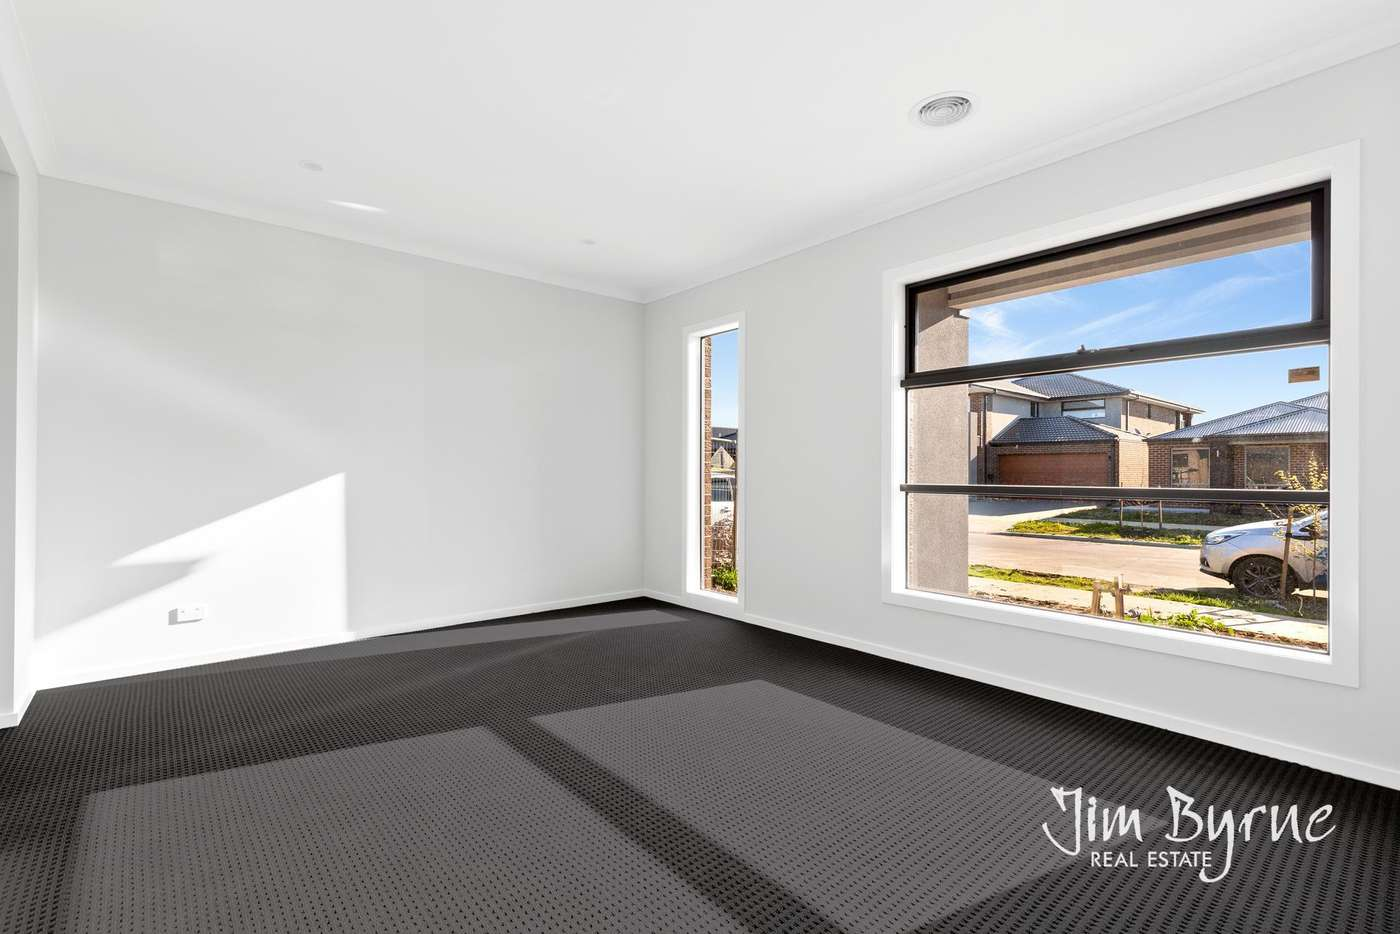 Sixth view of Homely house listing, 11 Cortajella Avenue, Clyde North VIC 3978